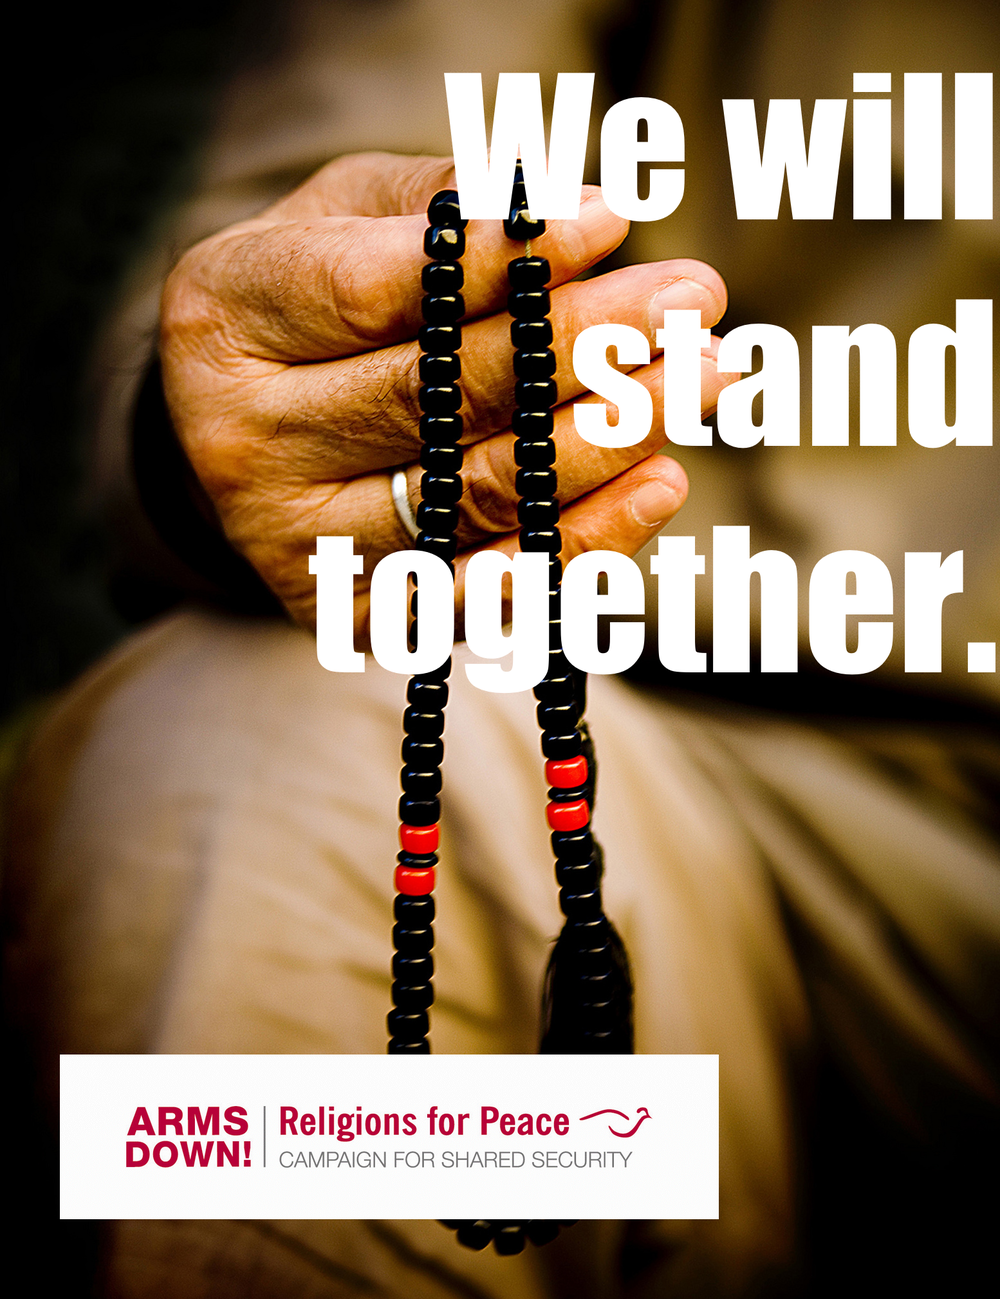 Image  Source .  Religions for Peace have  denounced ISIS/ISIL  for their abhorrent policies and actions in the region and asked for all to take a stand against this terrible organization.